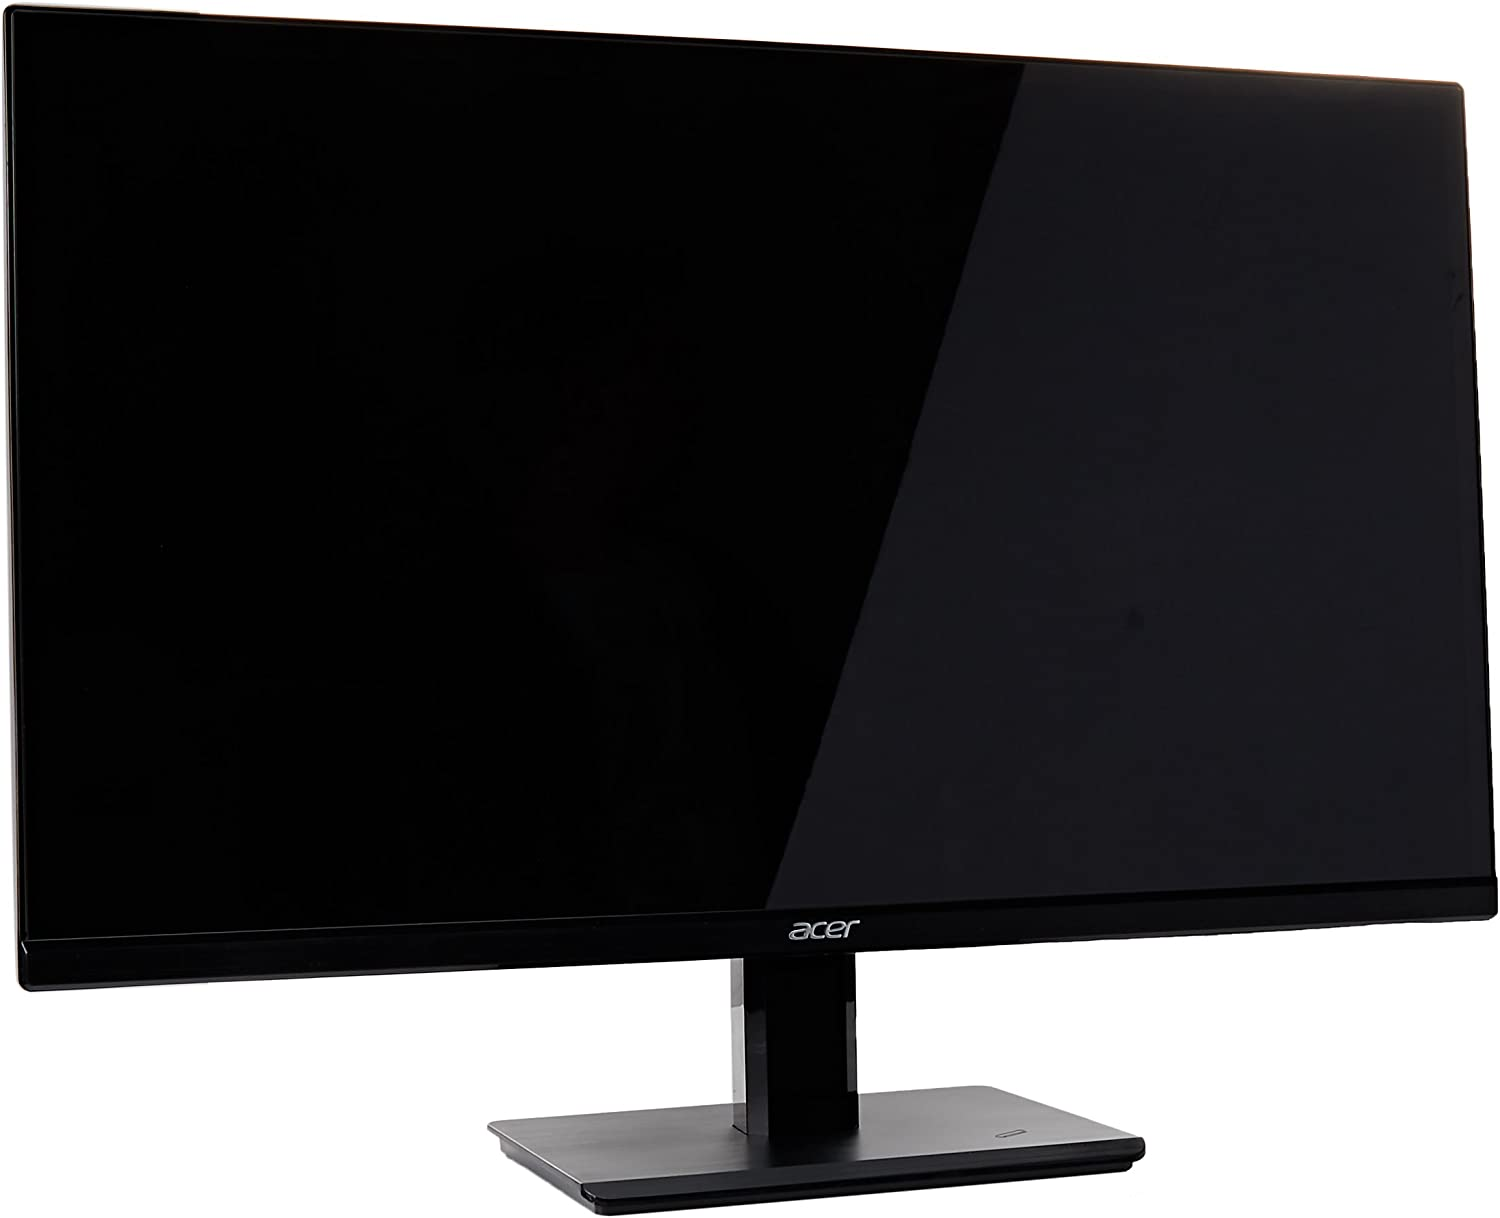 Acer H276HL bmid 27-Inch (1920 x 1080) IPS Widescreen Monitor